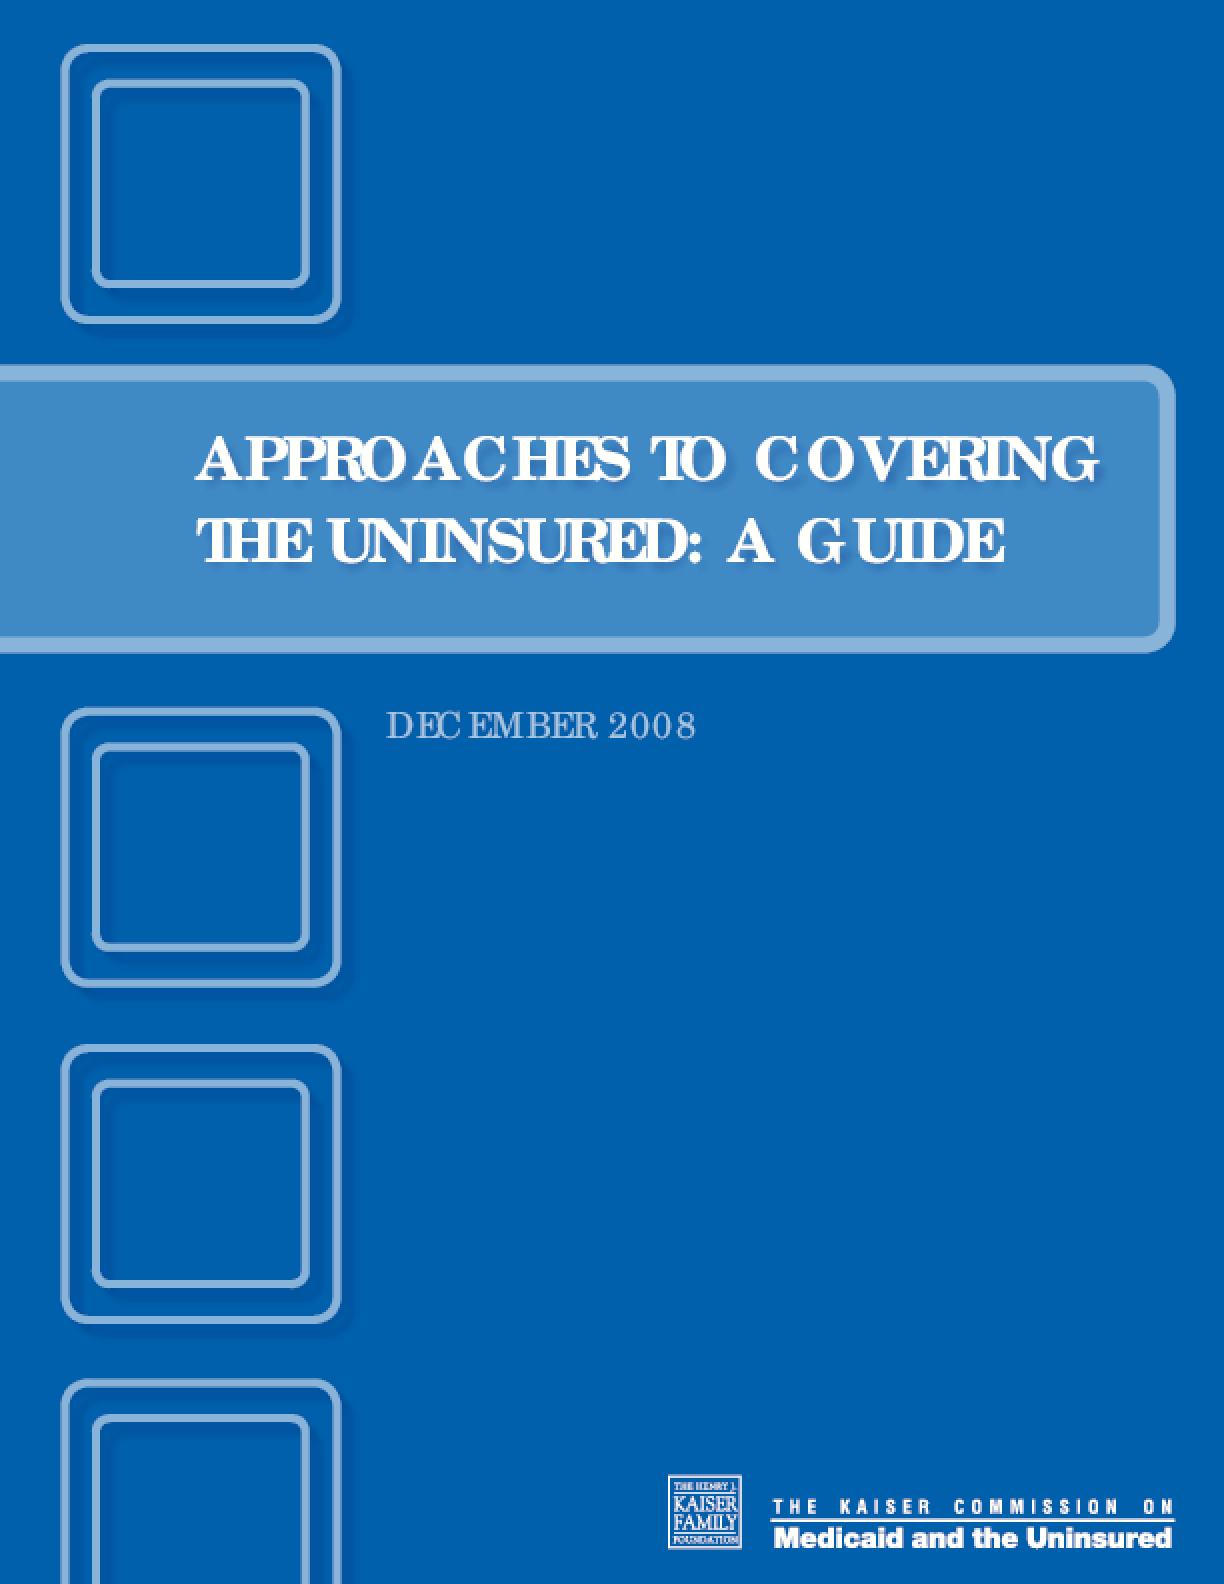 Approaches to Covering the Uninsured: A Guide